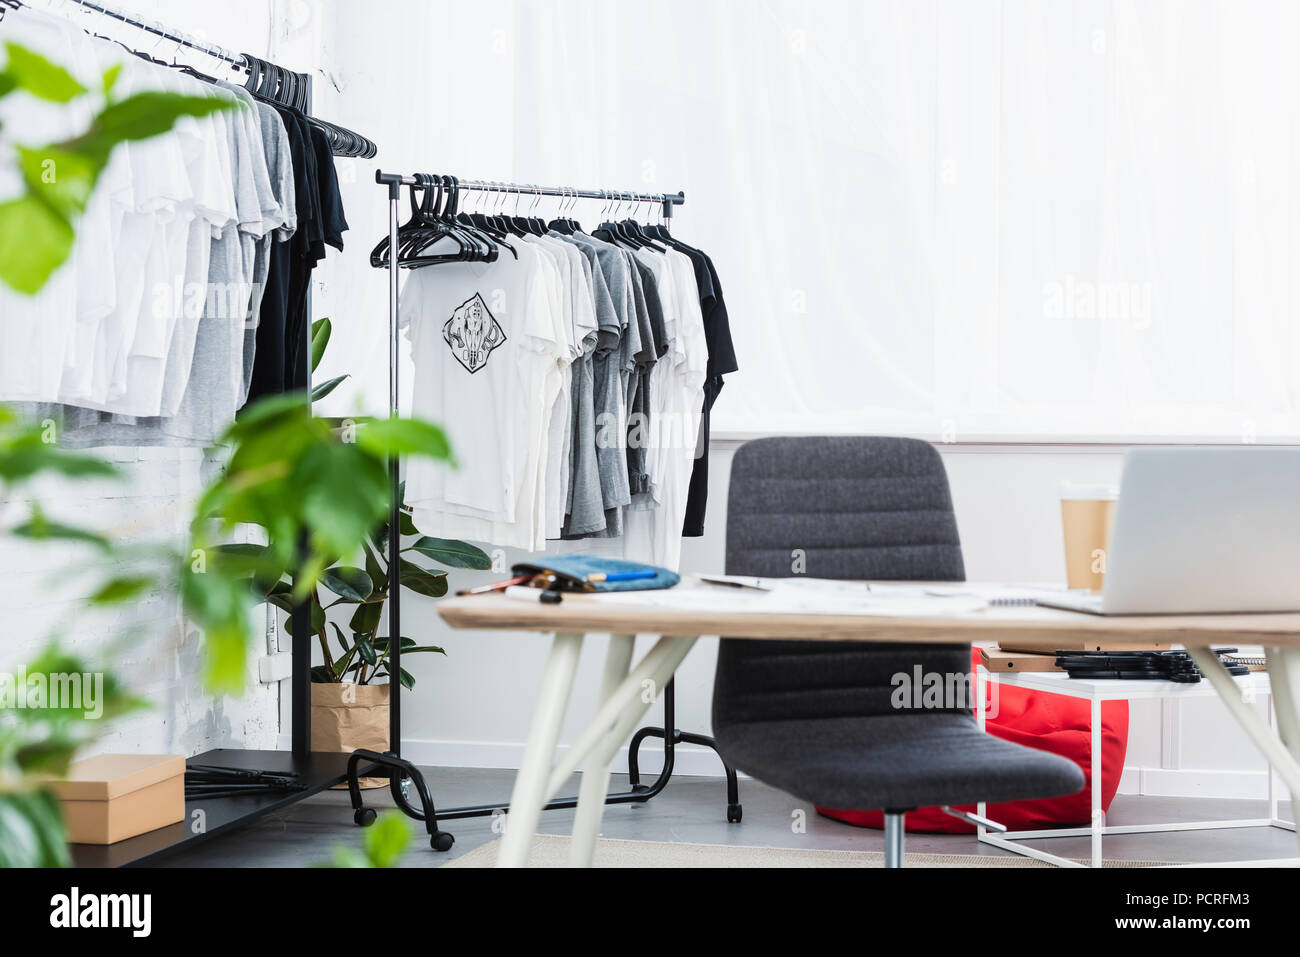 Selective Focus Of T Shirts On Hangers And Working Table With Laptop